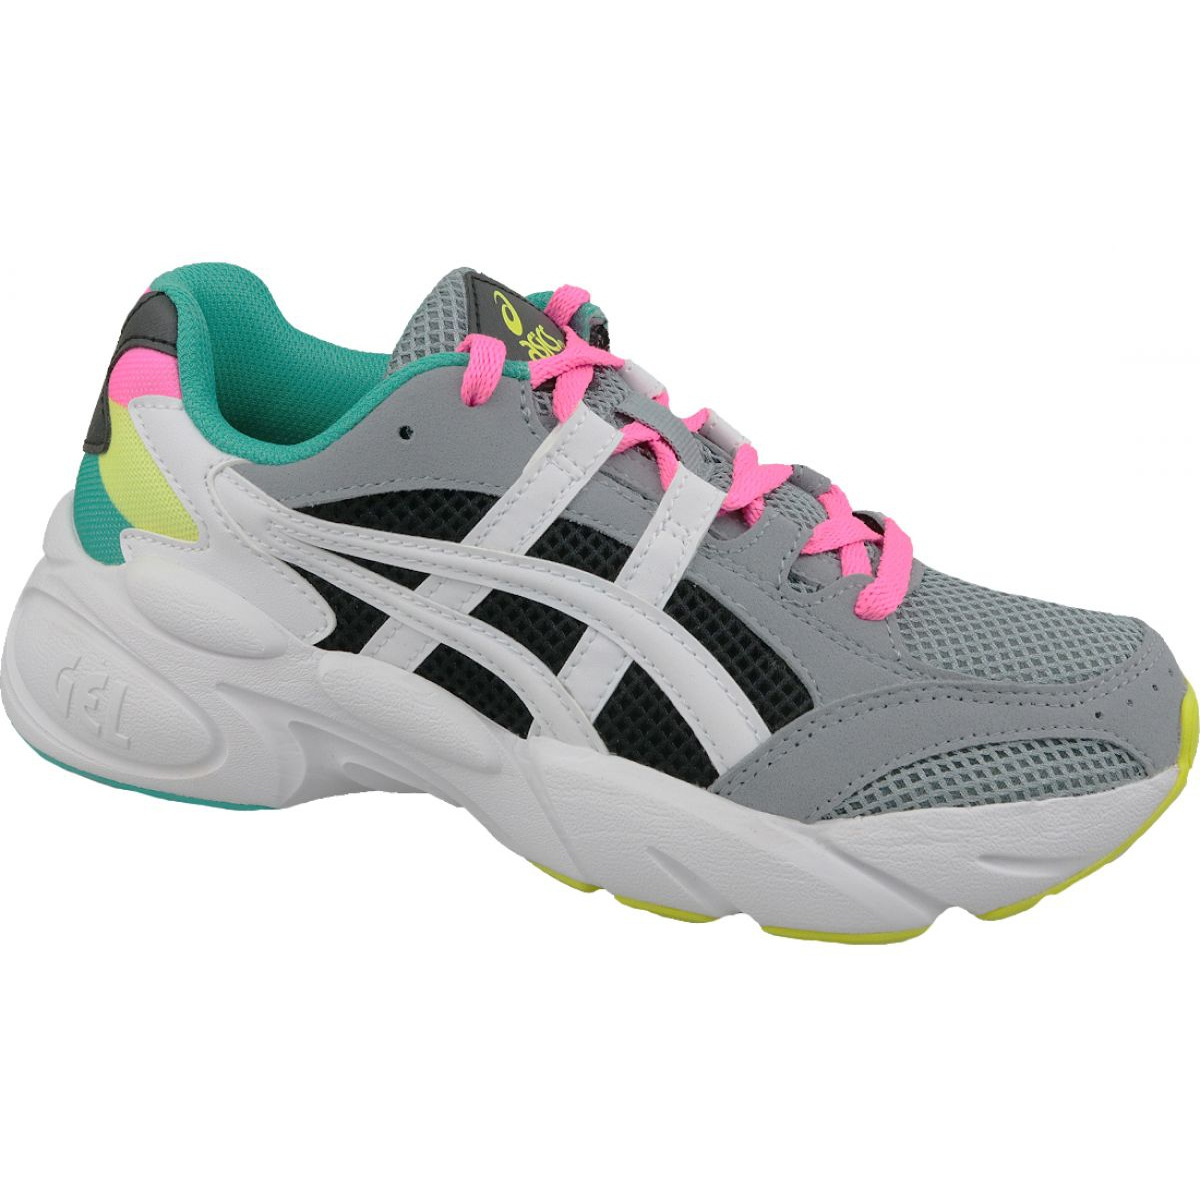 Scarpa Asics gel cumulus gs junior